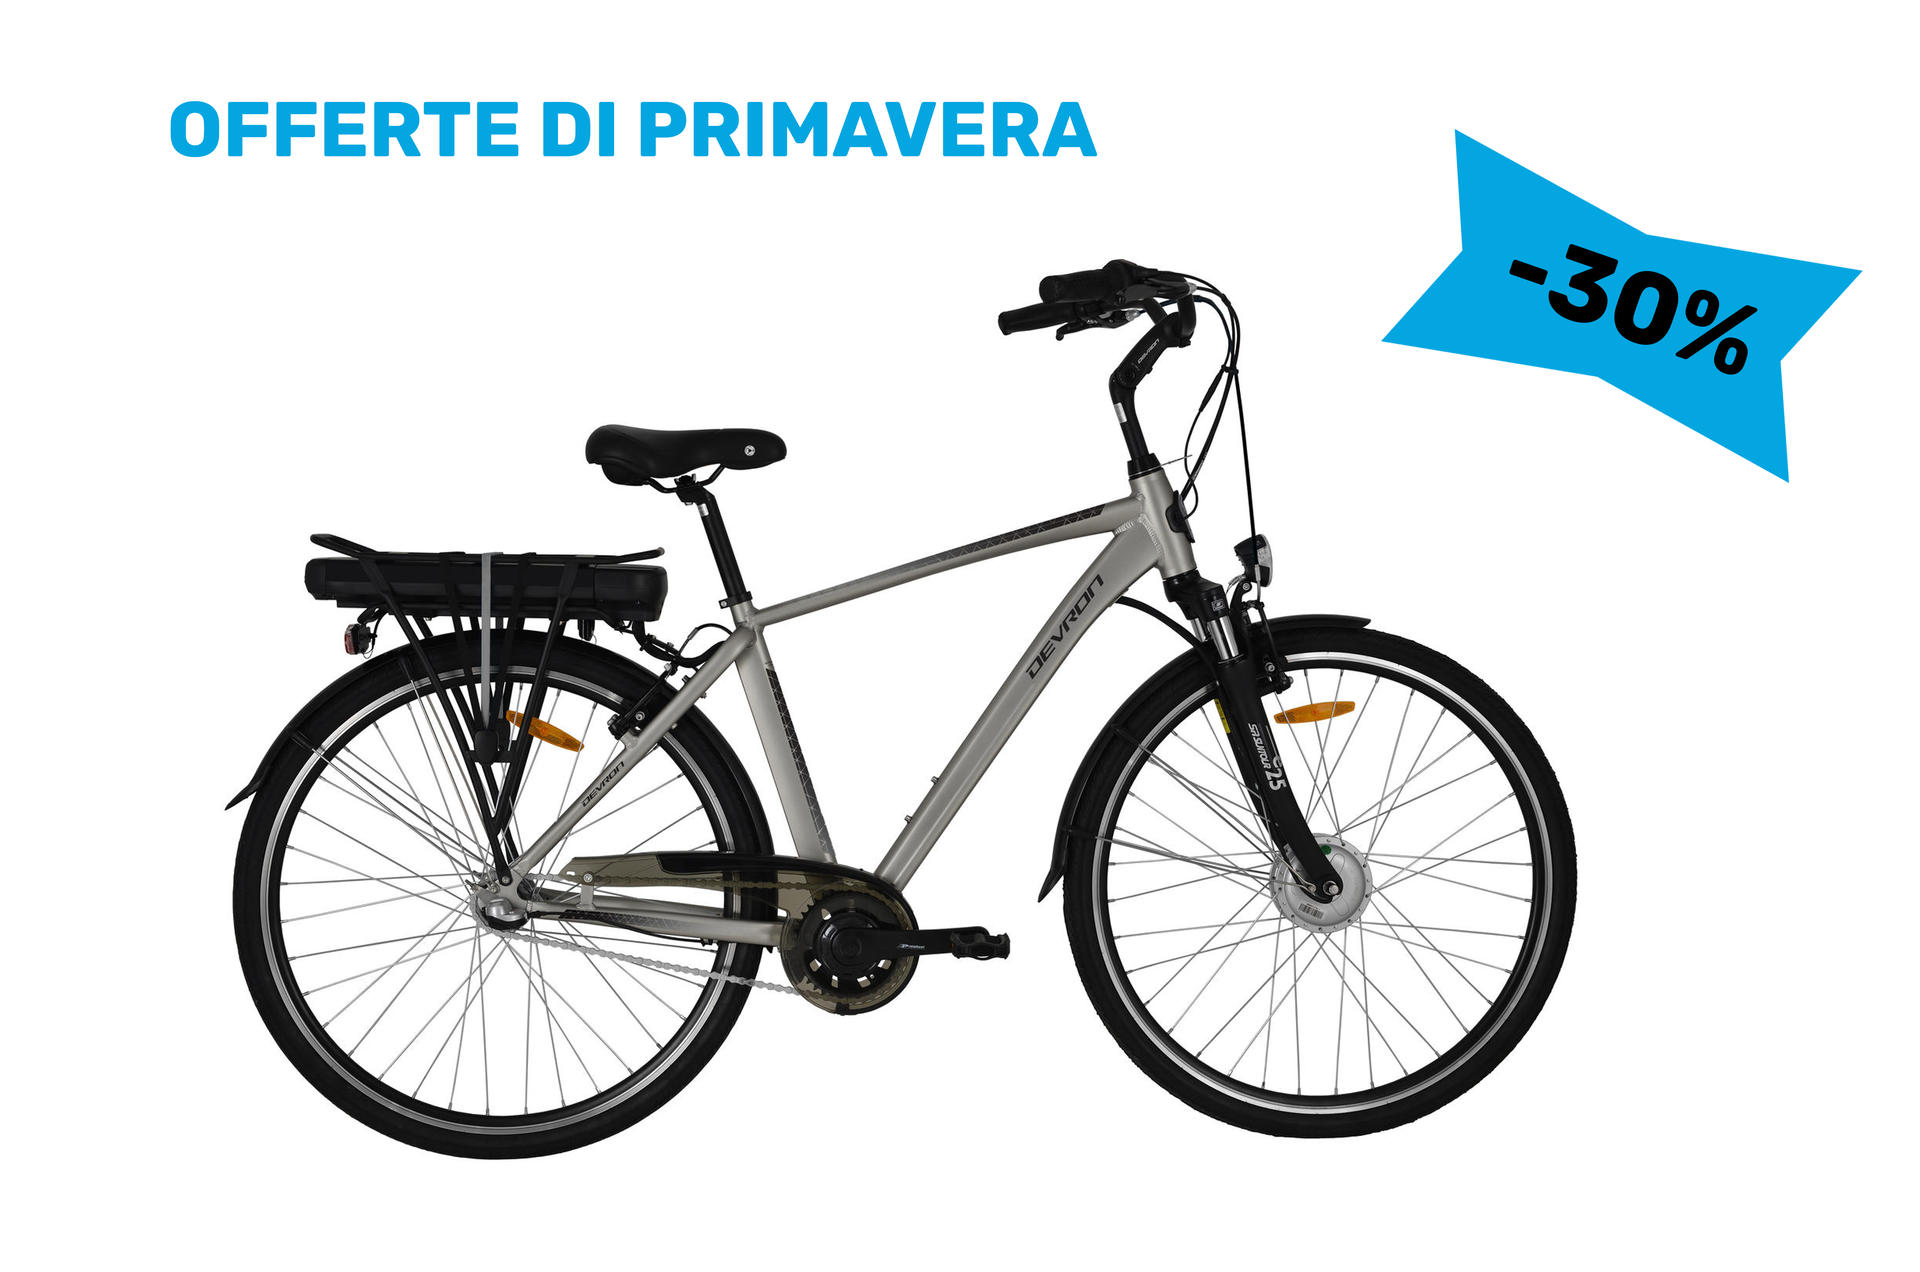 Bicicletta elettrica city bike Devron 28121 530mm Champagne -28